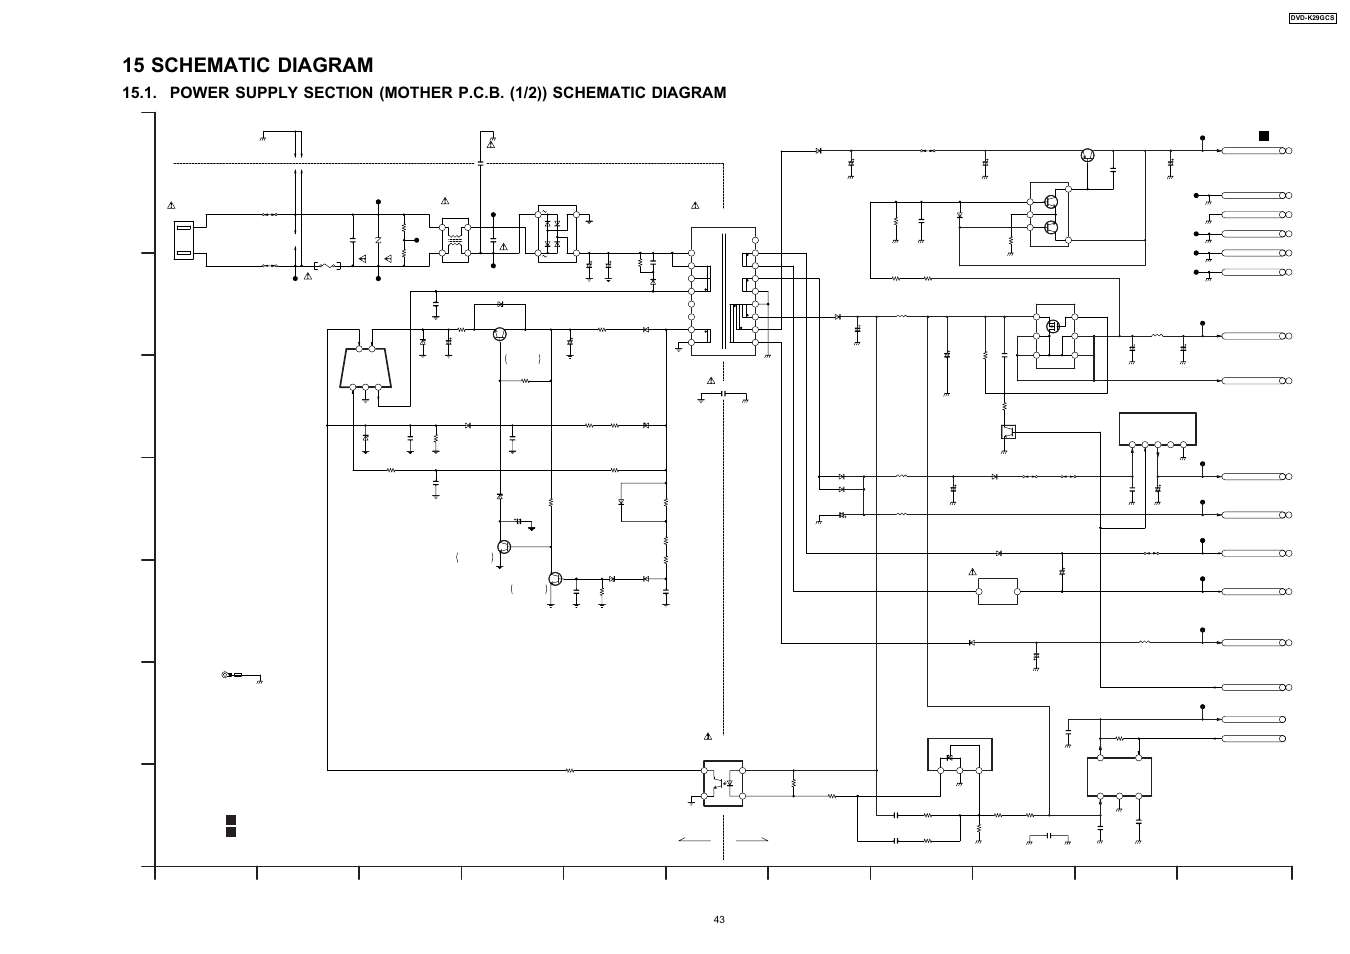 panasonic schematic diagram wiring library. Black Bedroom Furniture Sets. Home Design Ideas